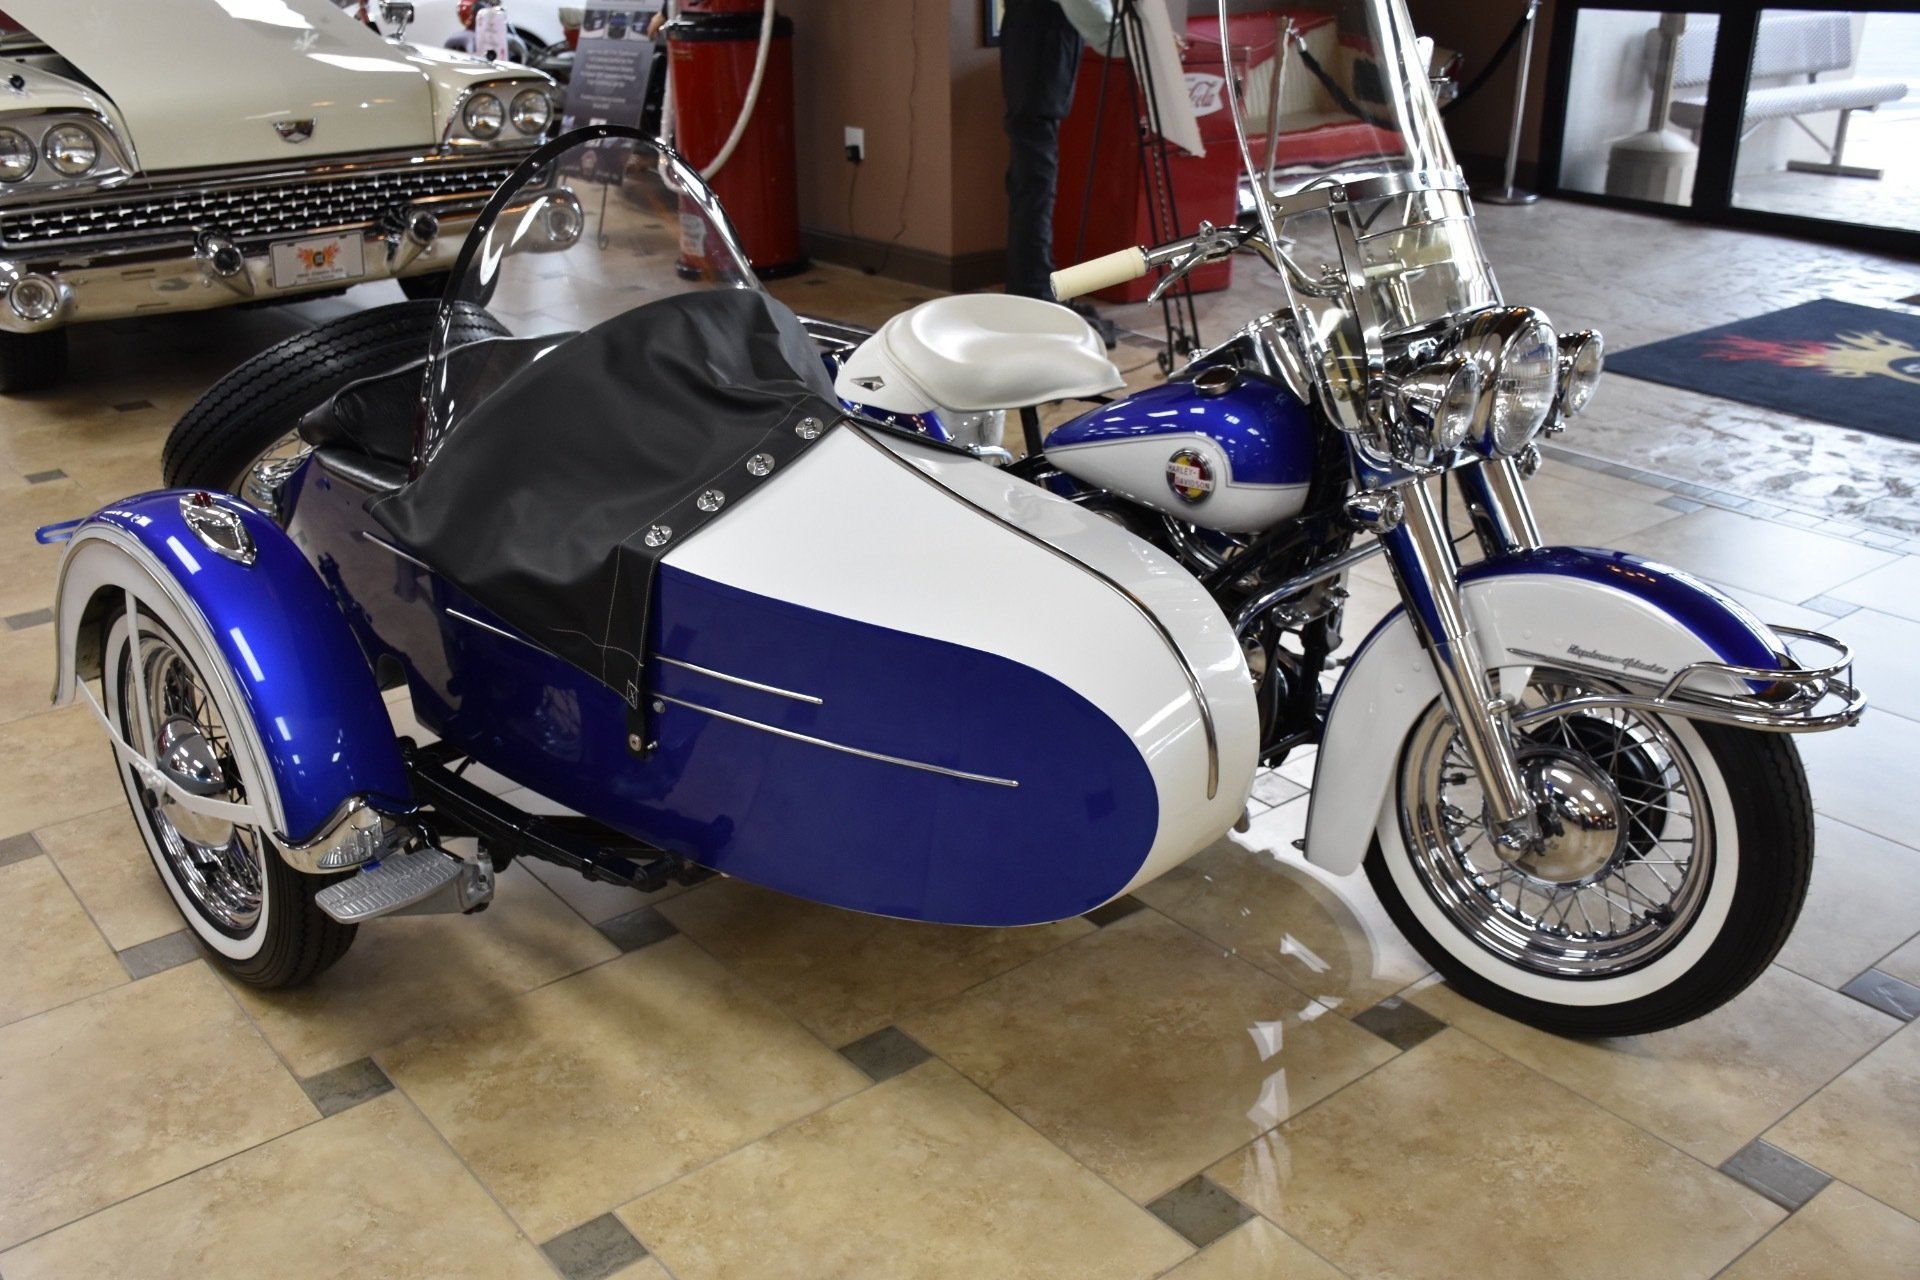 1957 Harley Davidson FLH | Ideal Classic Cars LLC